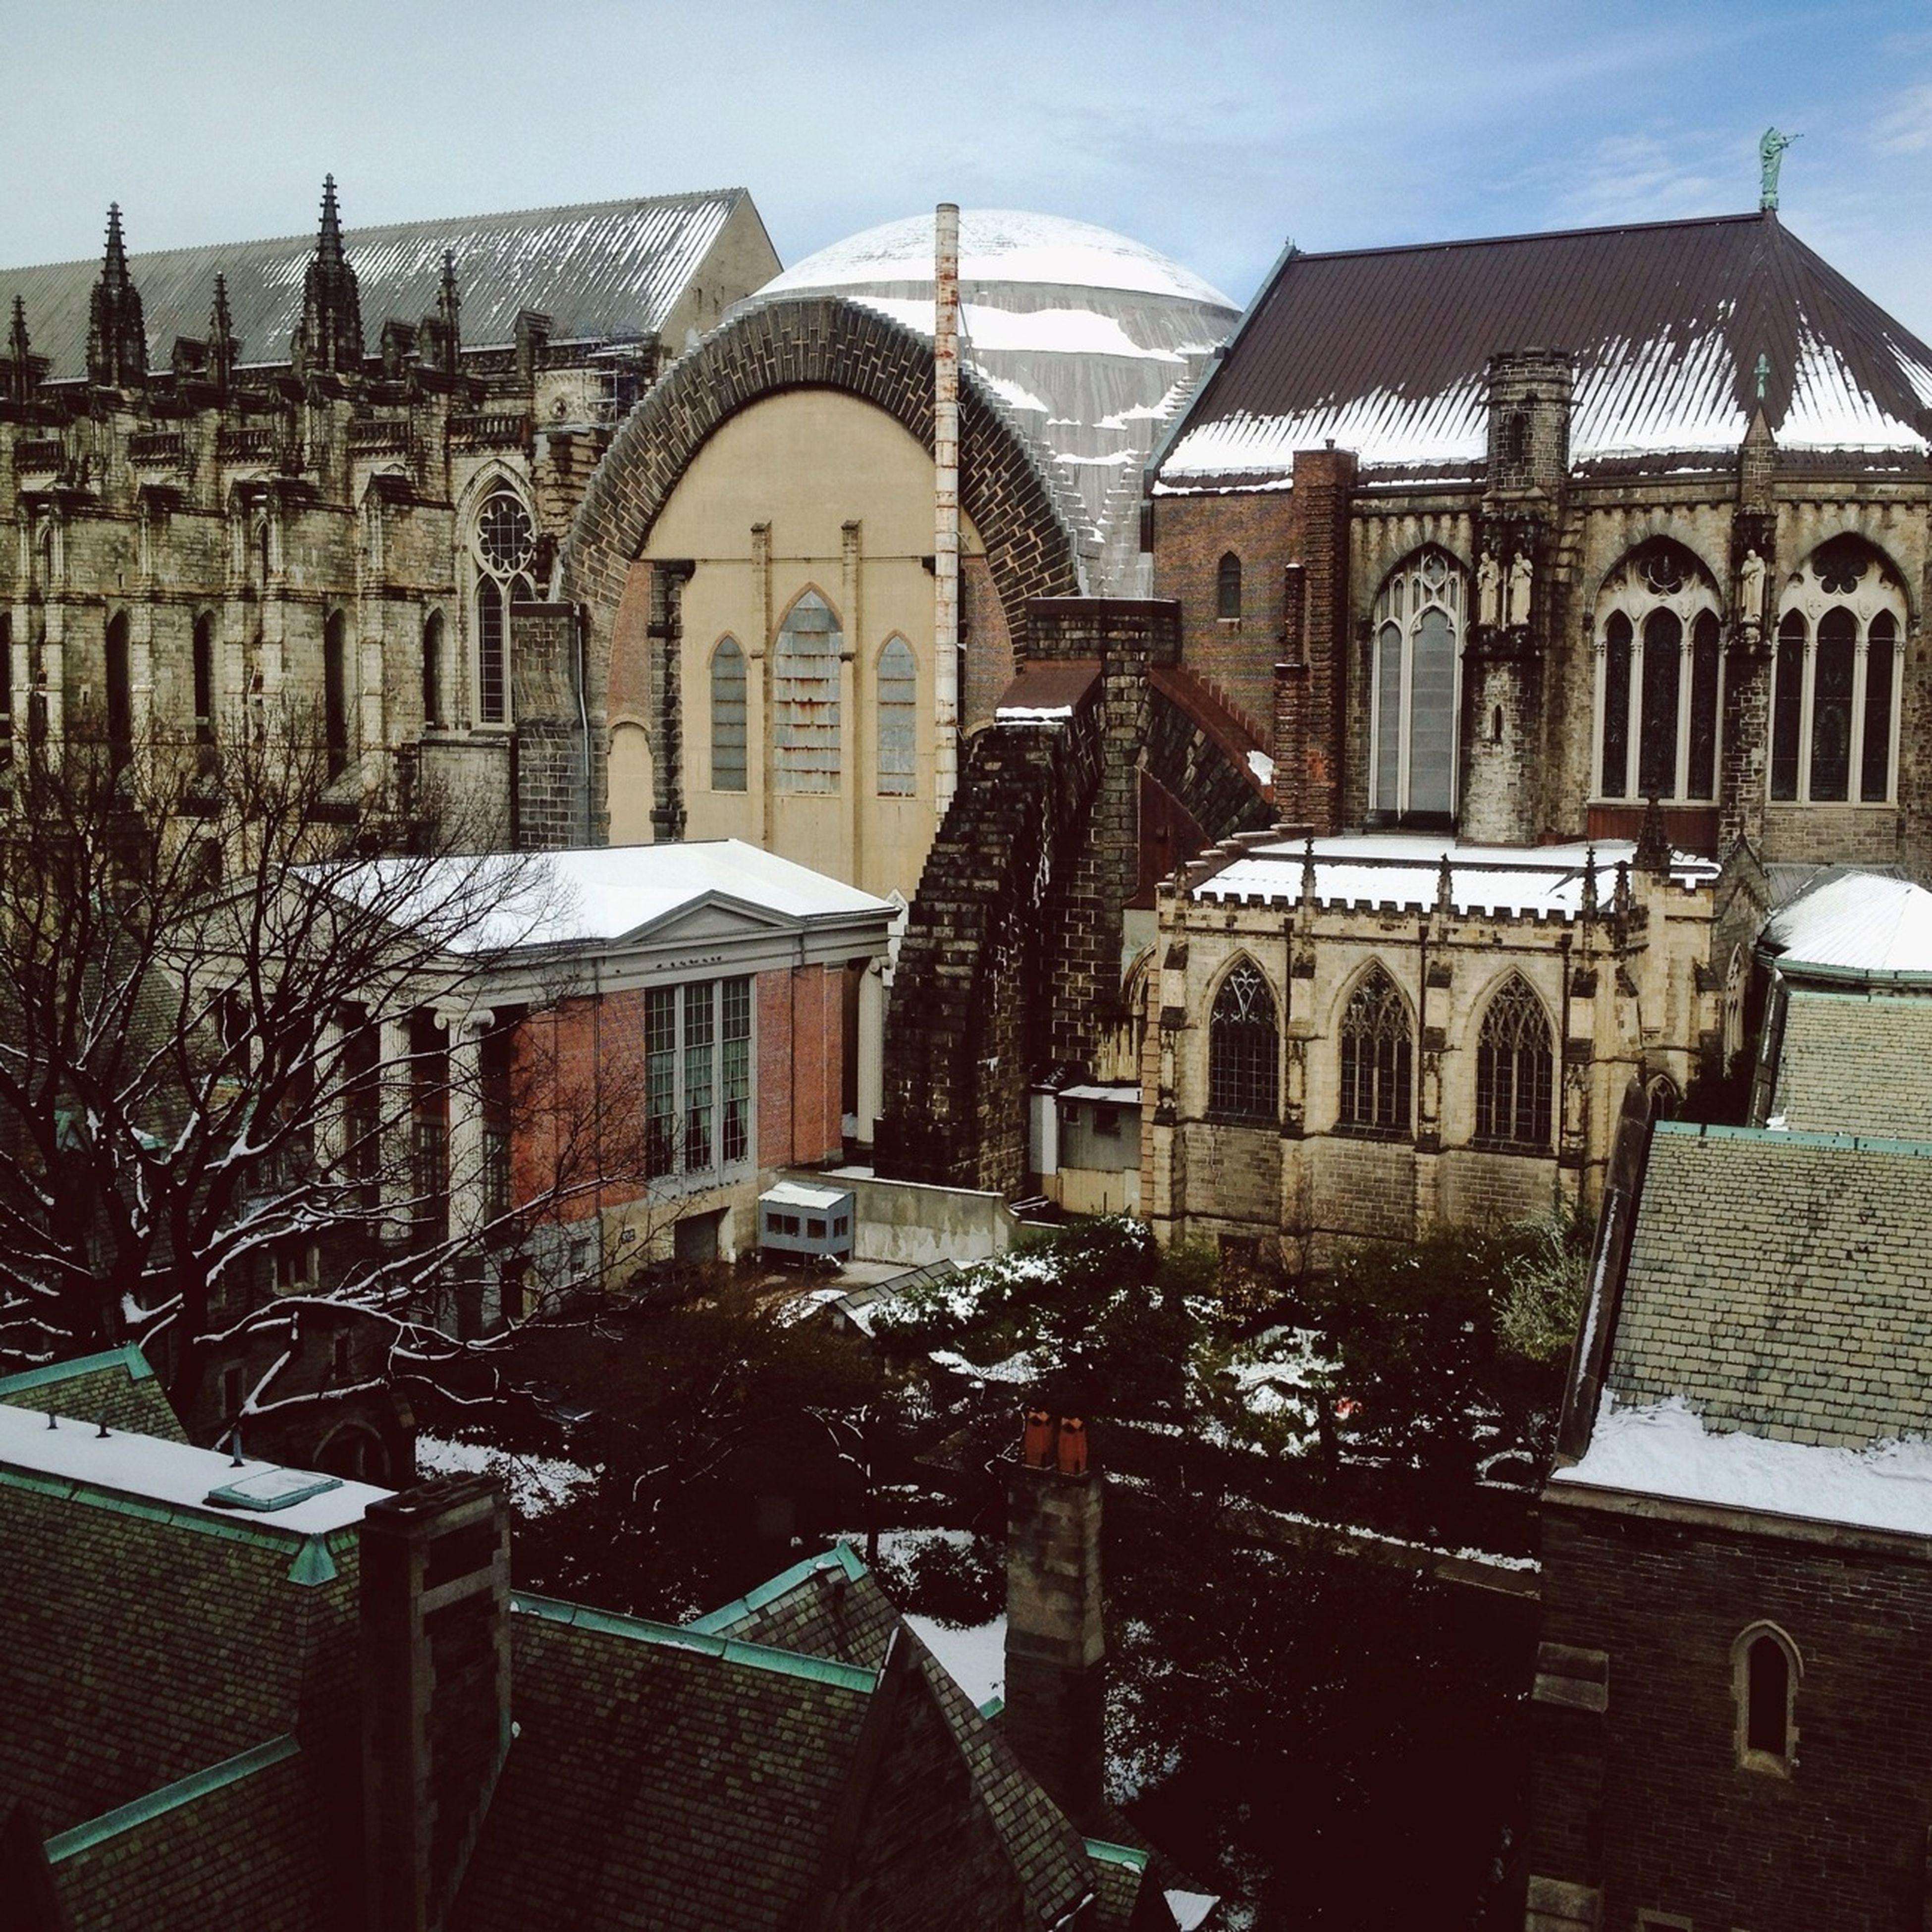 building exterior, architecture, built structure, residential building, residential structure, window, building, house, sky, city, day, balcony, old town, residential district, town, outdoors, roof, old, sunlight, church